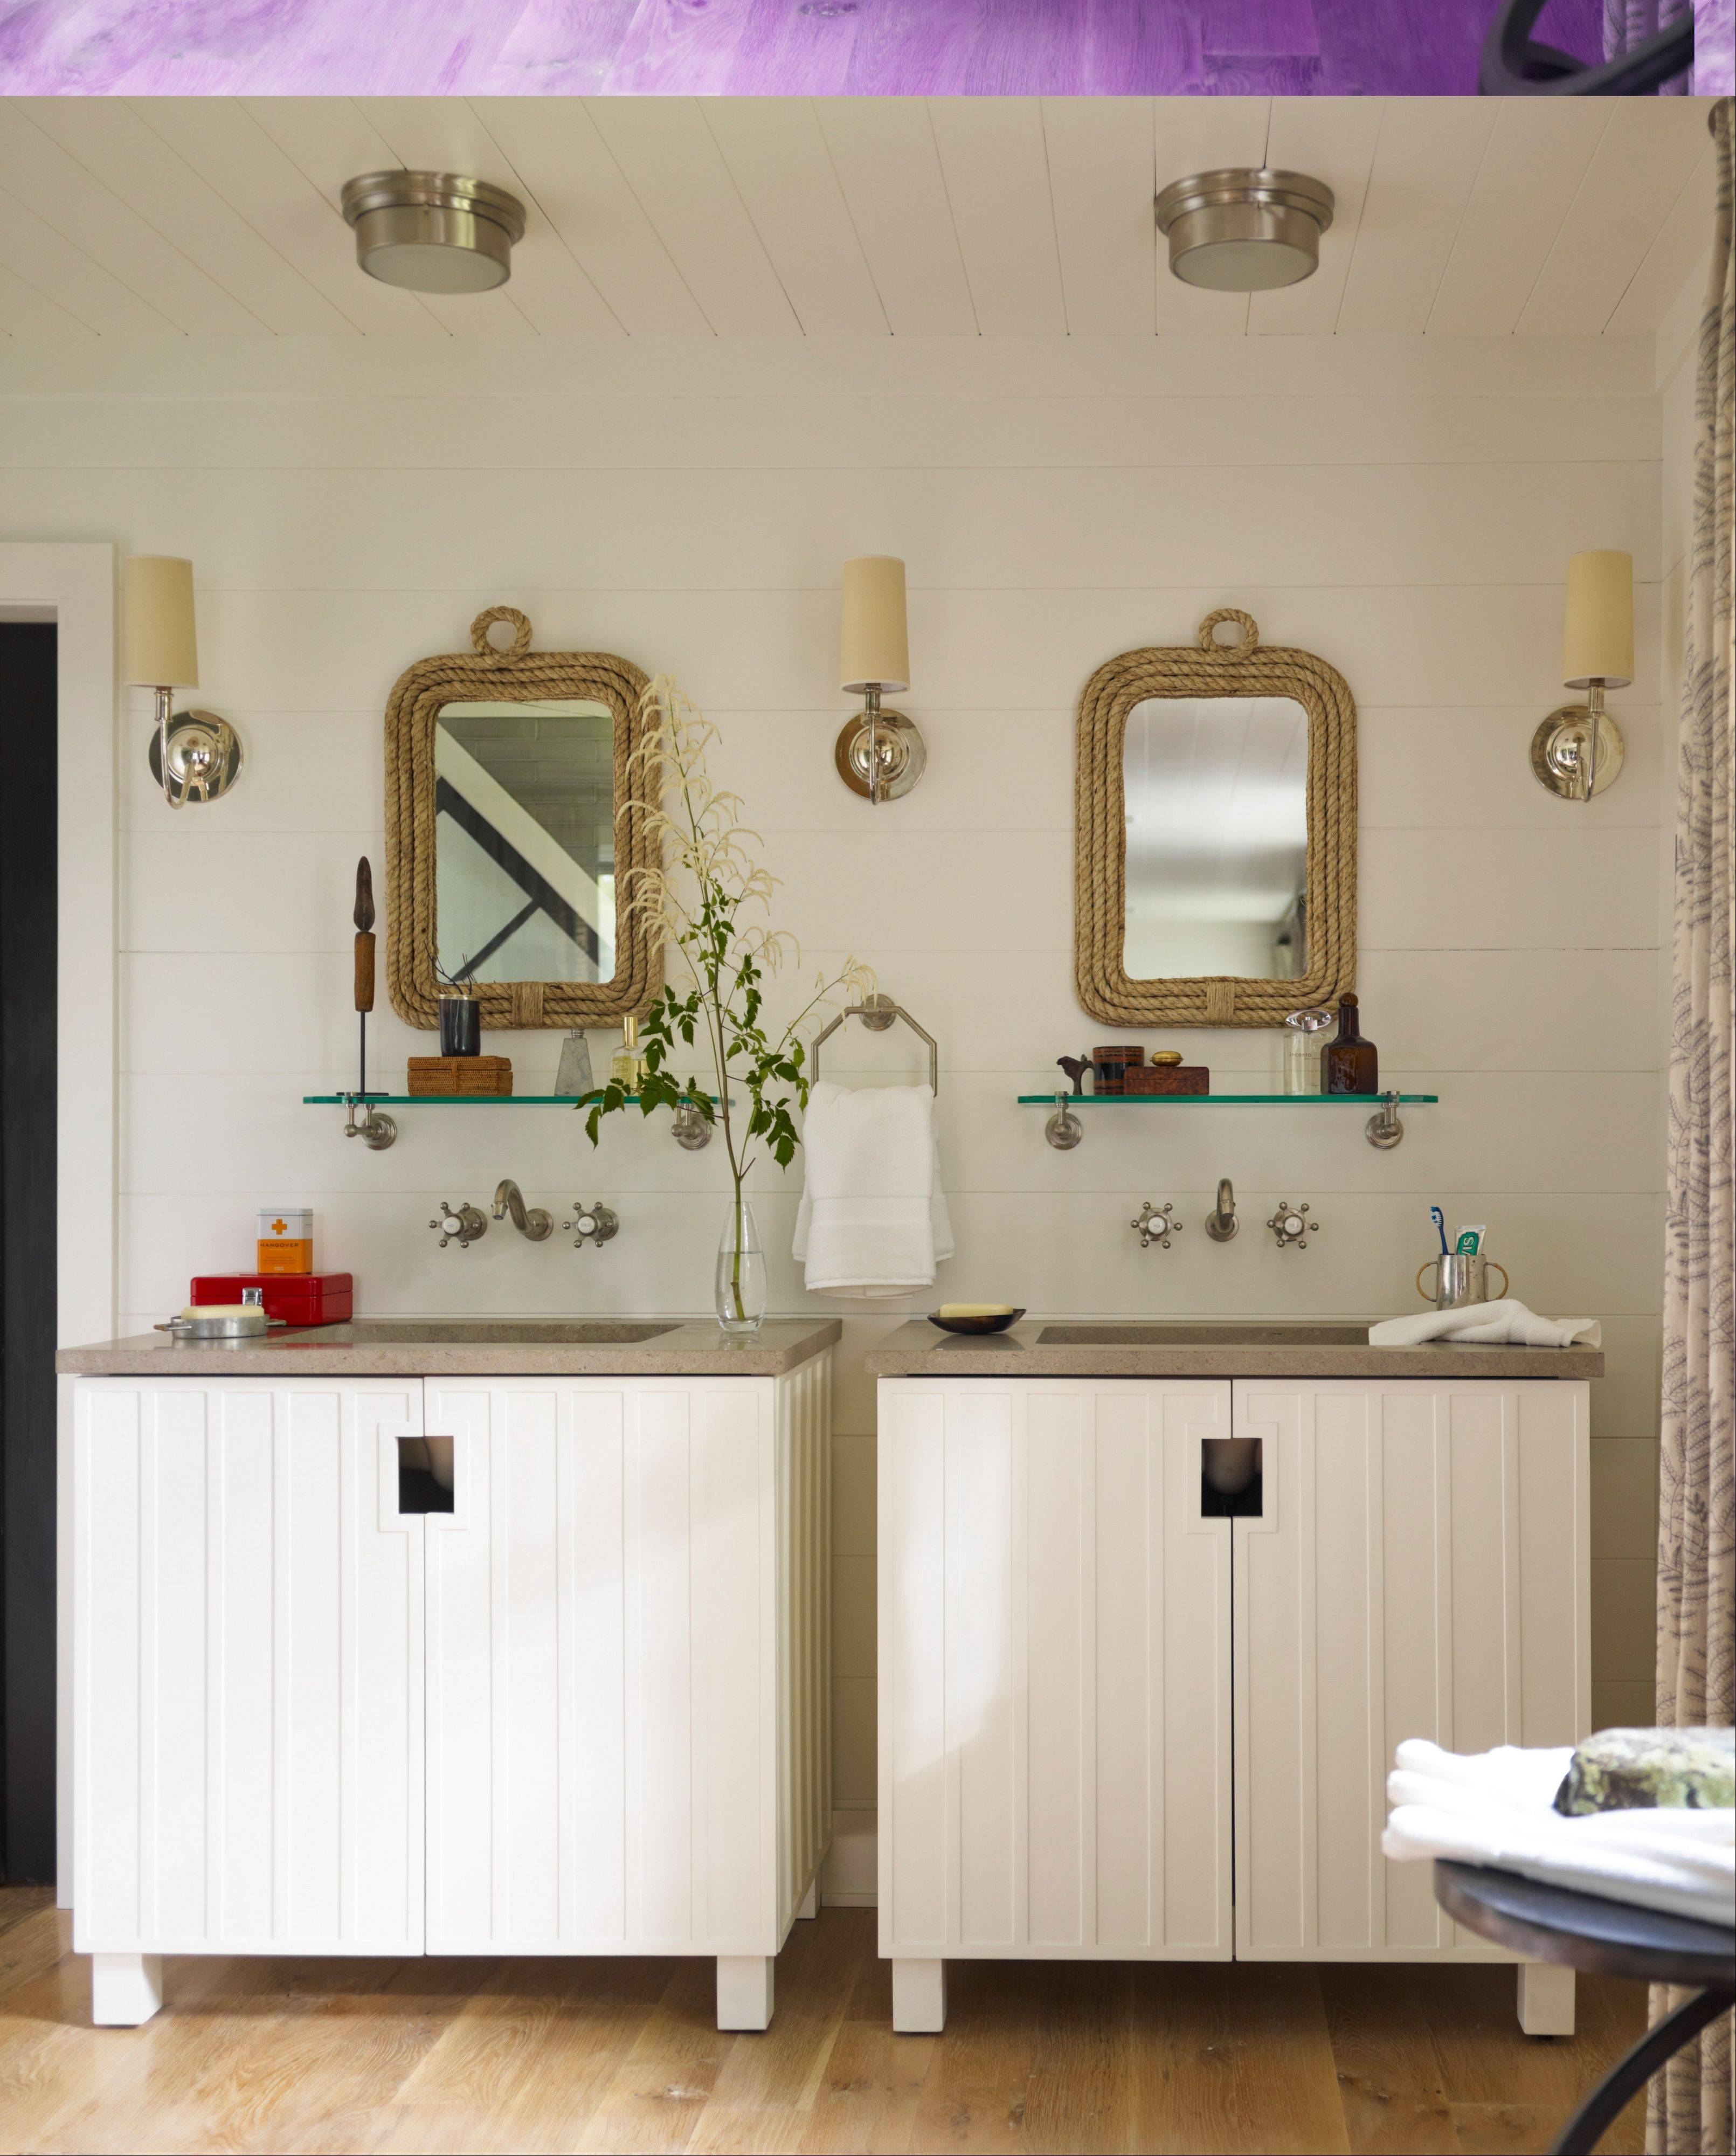 Thom Filicia used Kohler products in his lake home, including Chalkstrip Vanities and antique wallmount faucets.